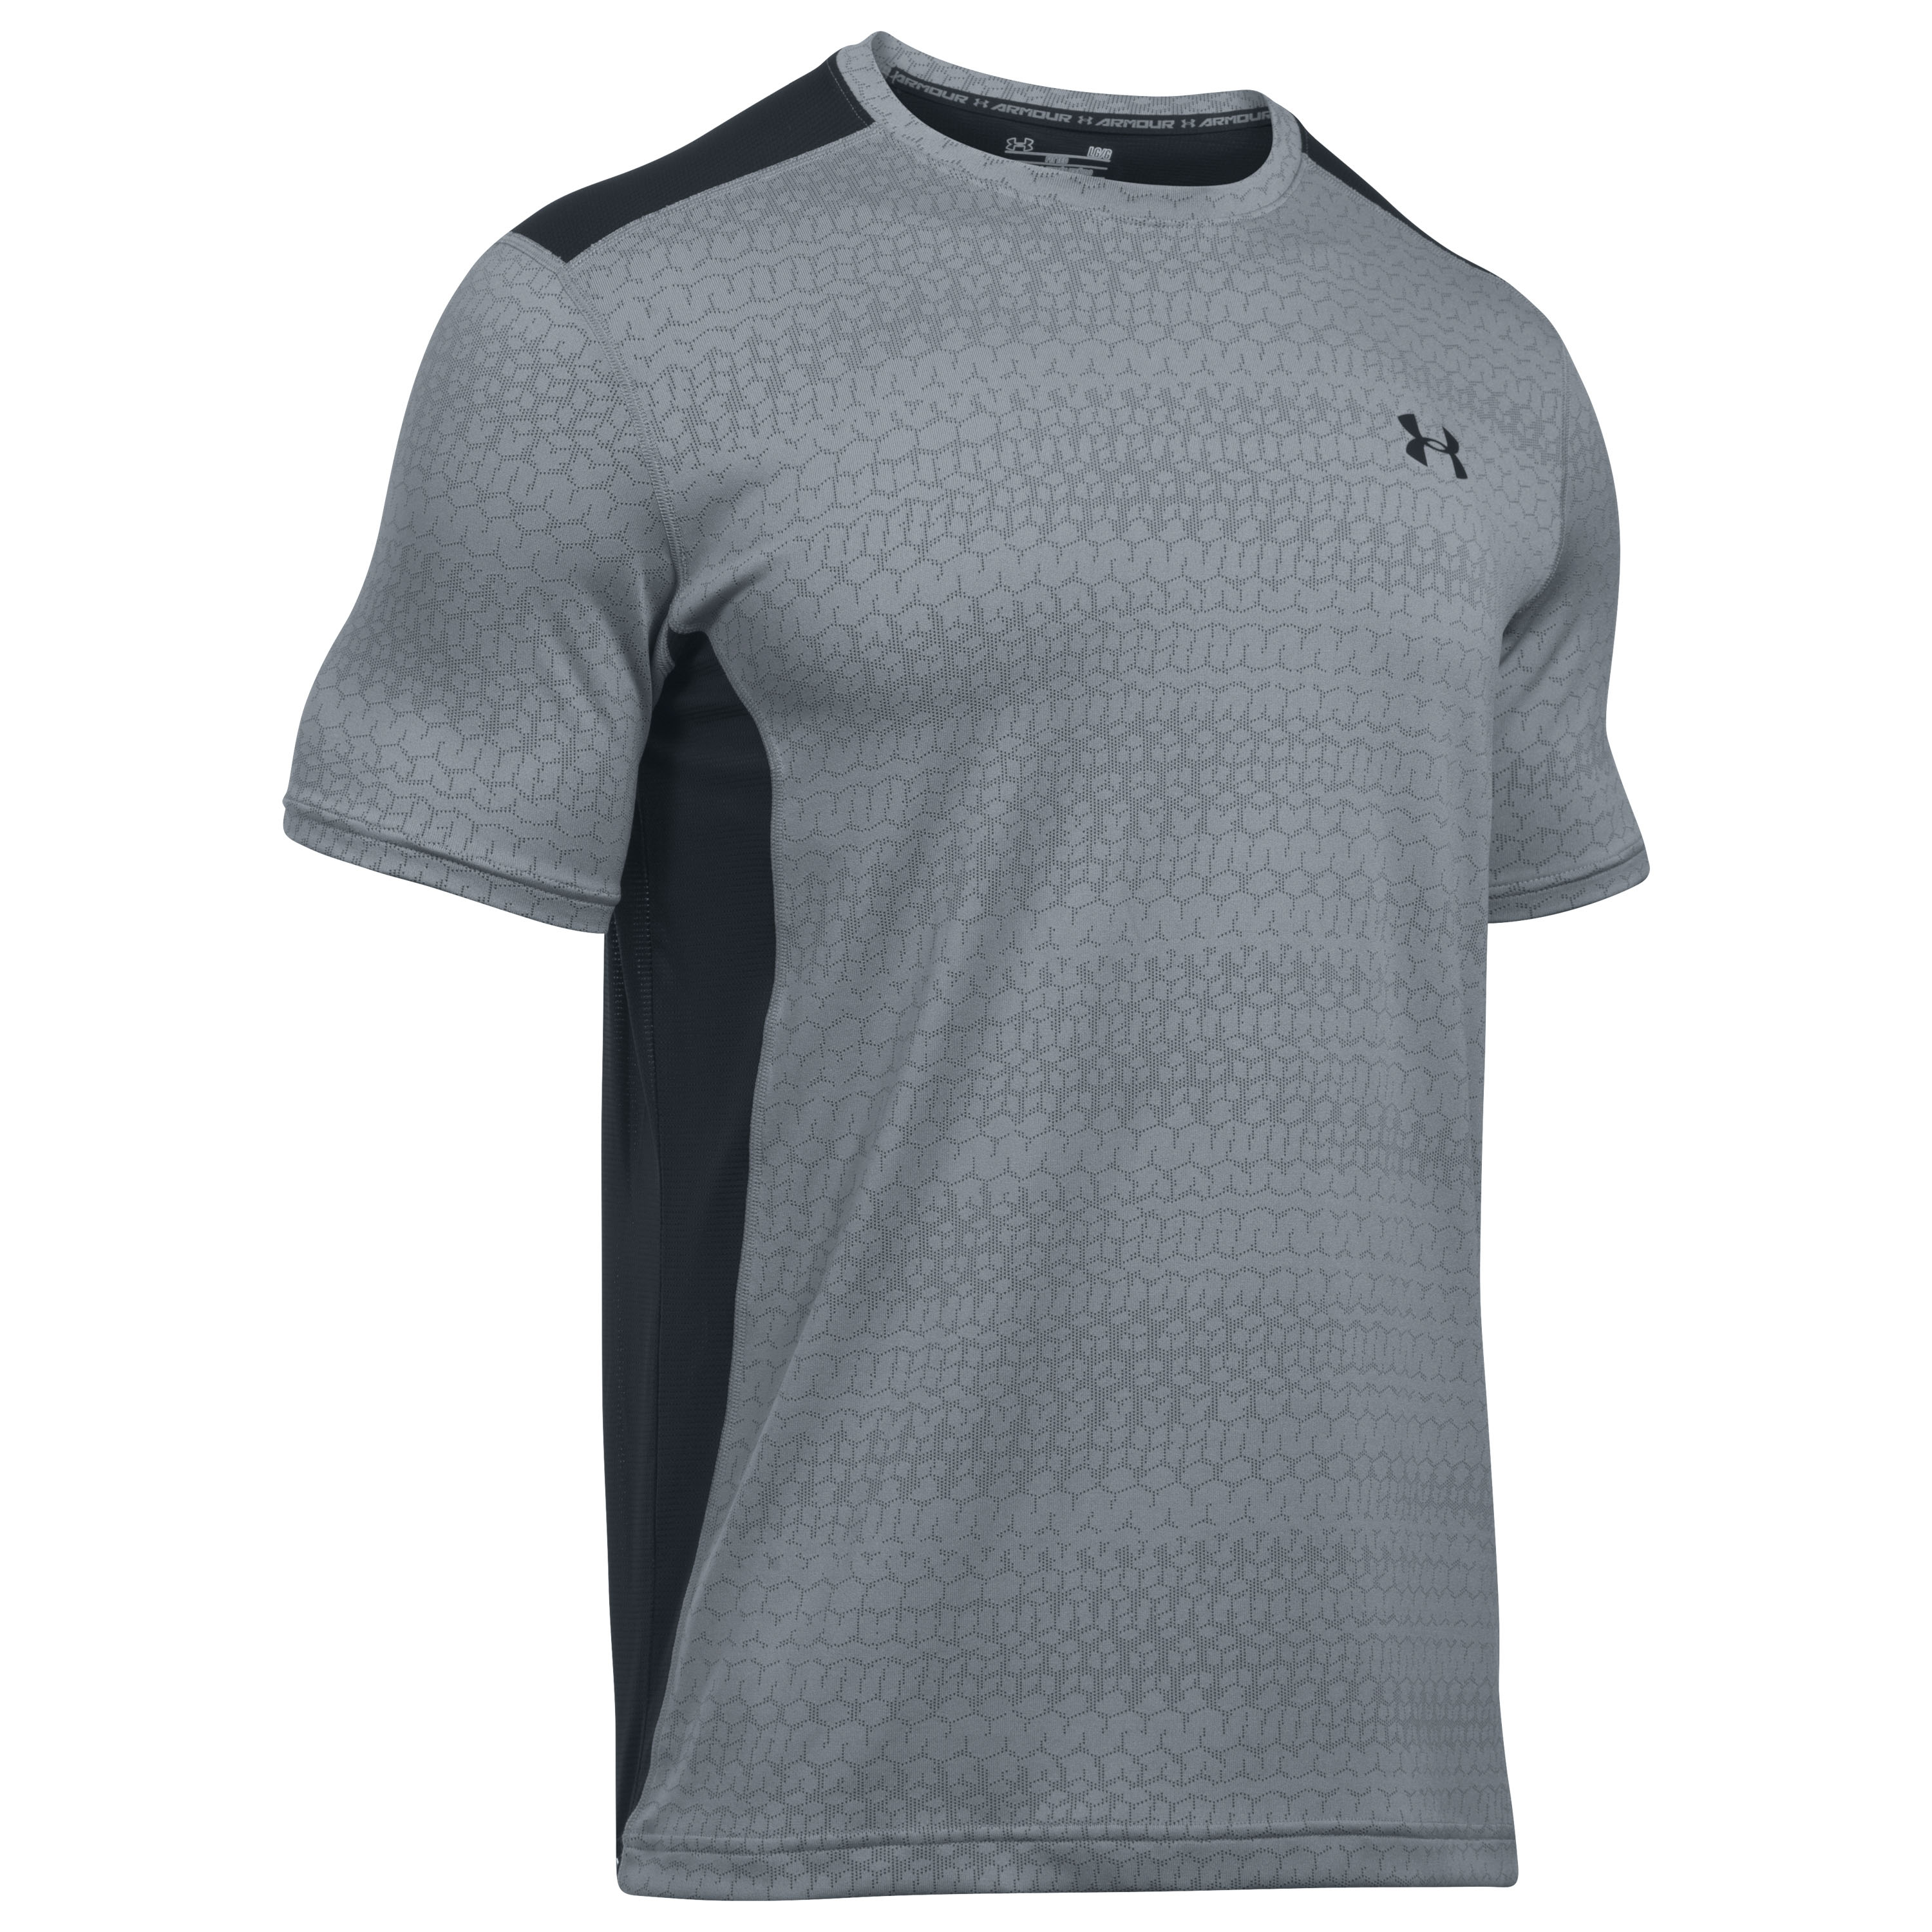 Under Armour Fitness T-Shirt Raid Jacquard SS grau schwarz